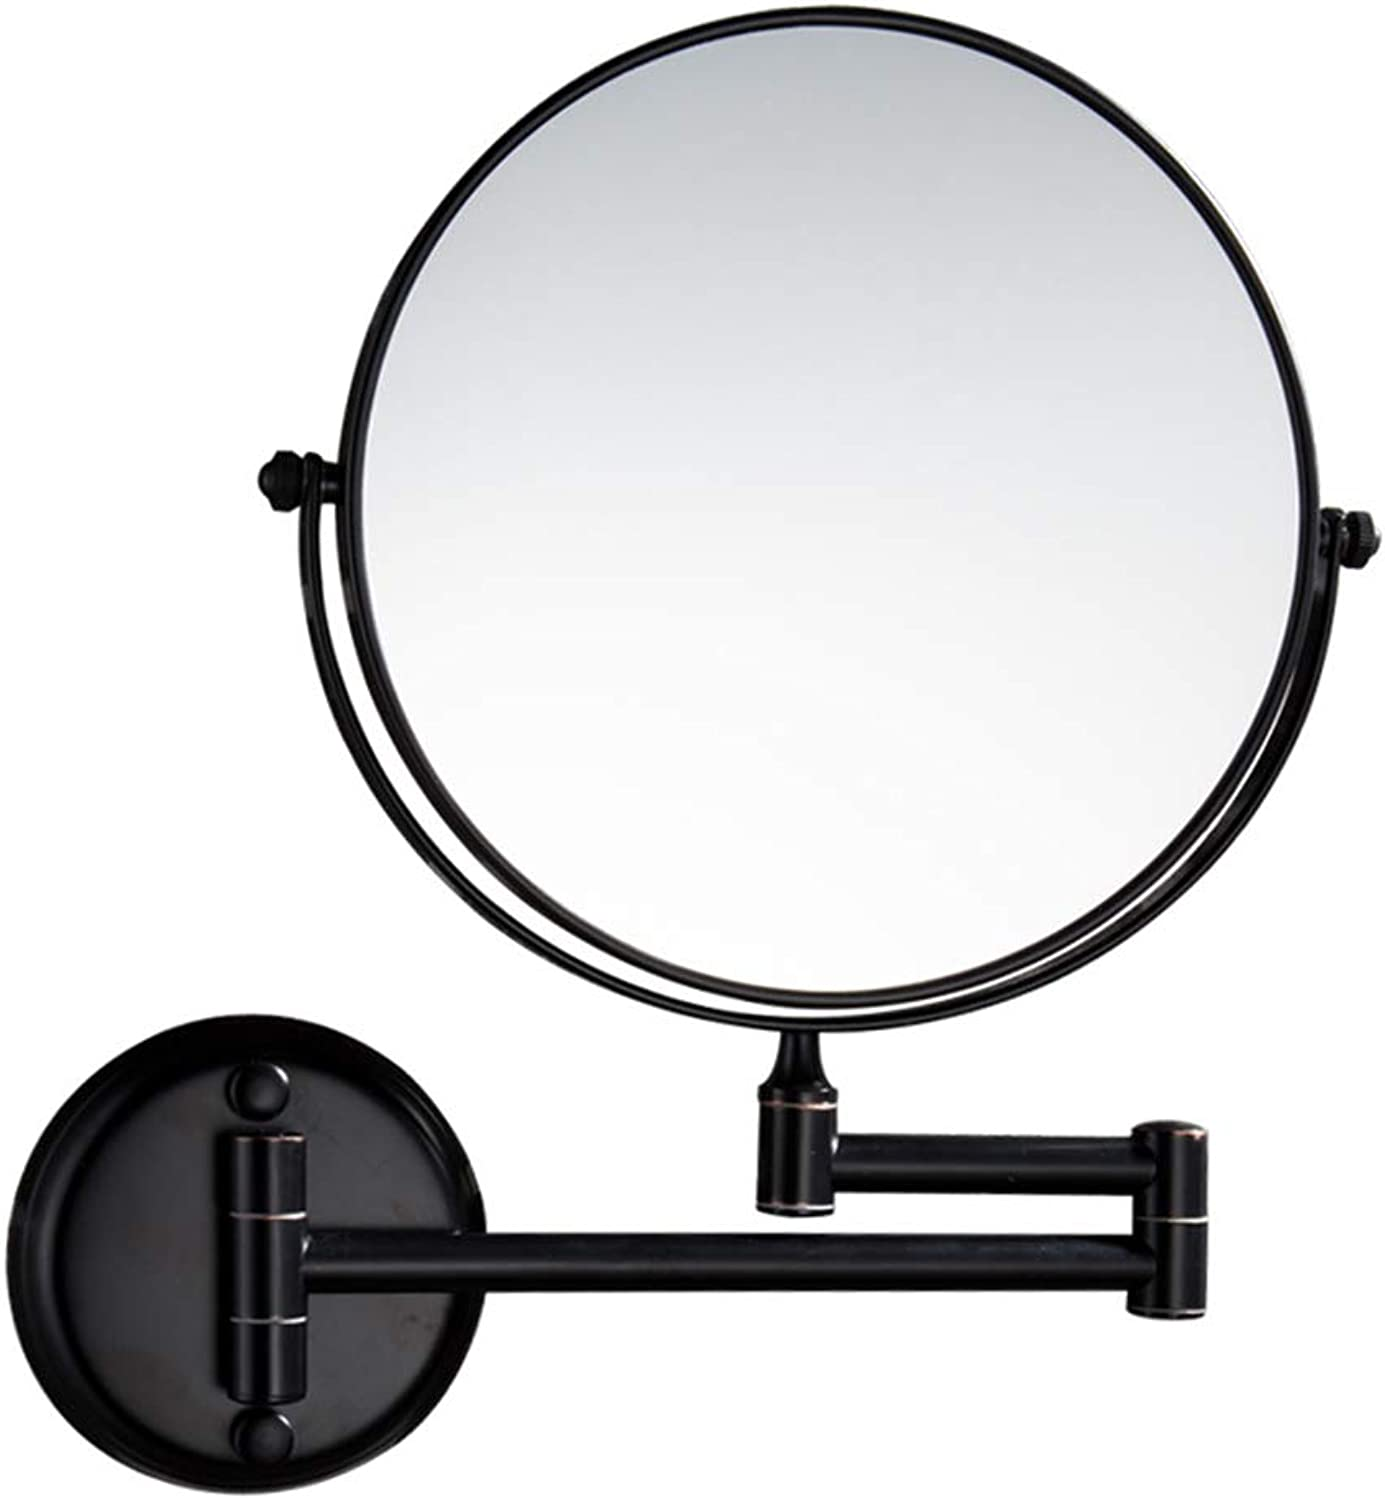 8-Inch Wall-Mounted Vanity Mirror with 360° Free redation and 12.5-Inch Telescopic Rod Expandable,B,6Inchs10x2